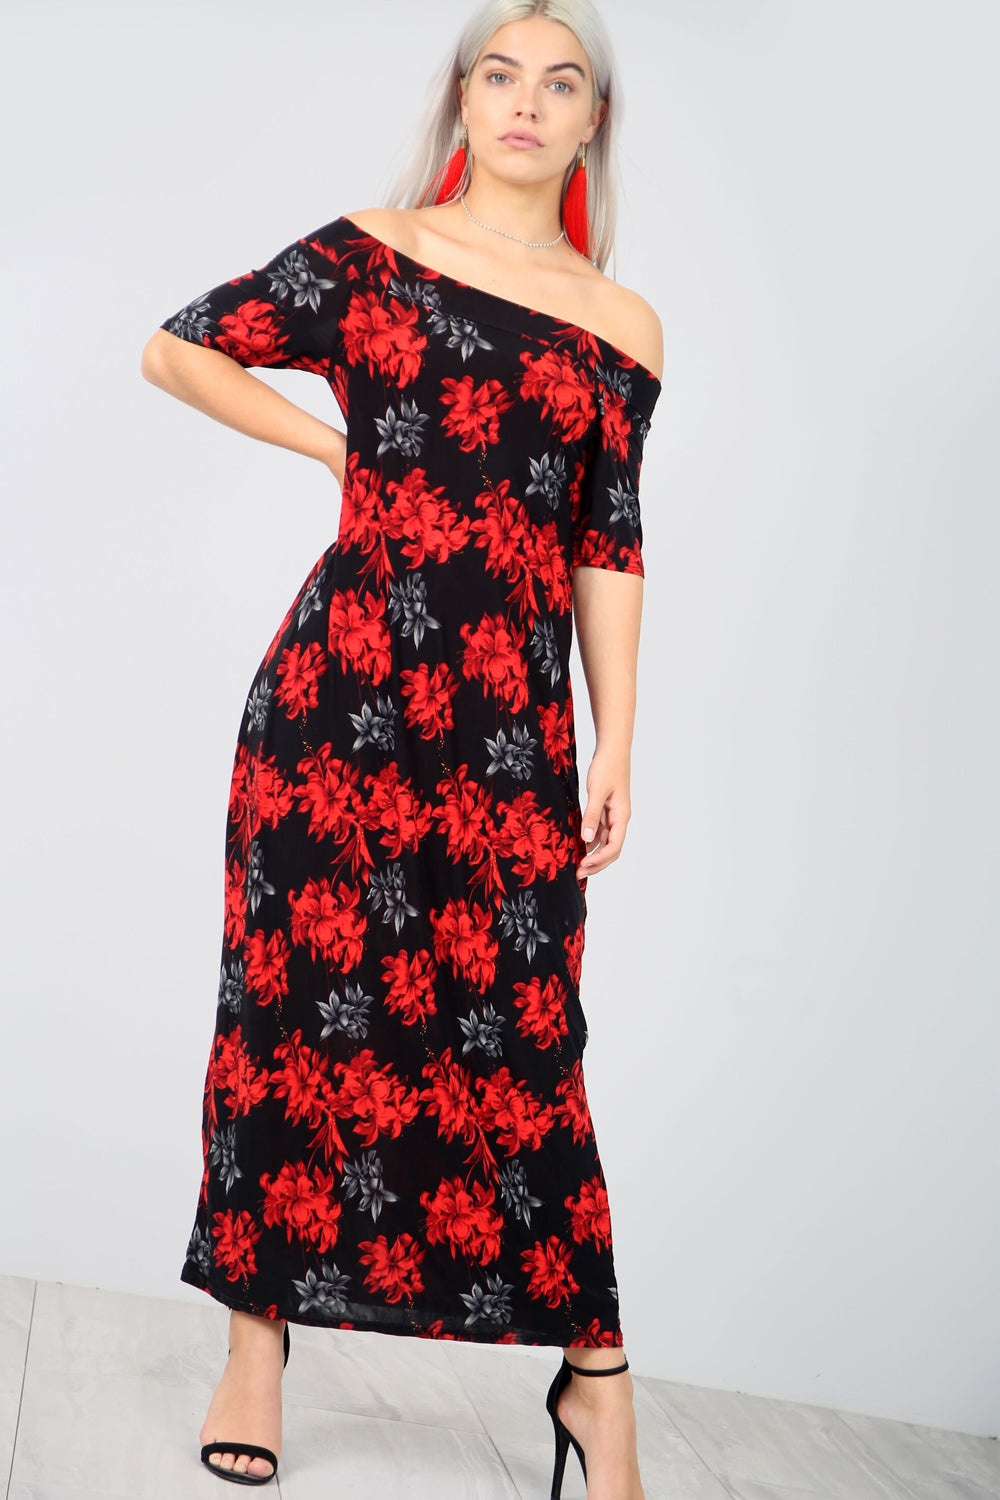 Off The Shoulder Red Floral Print Maxi Dress - bejealous-com